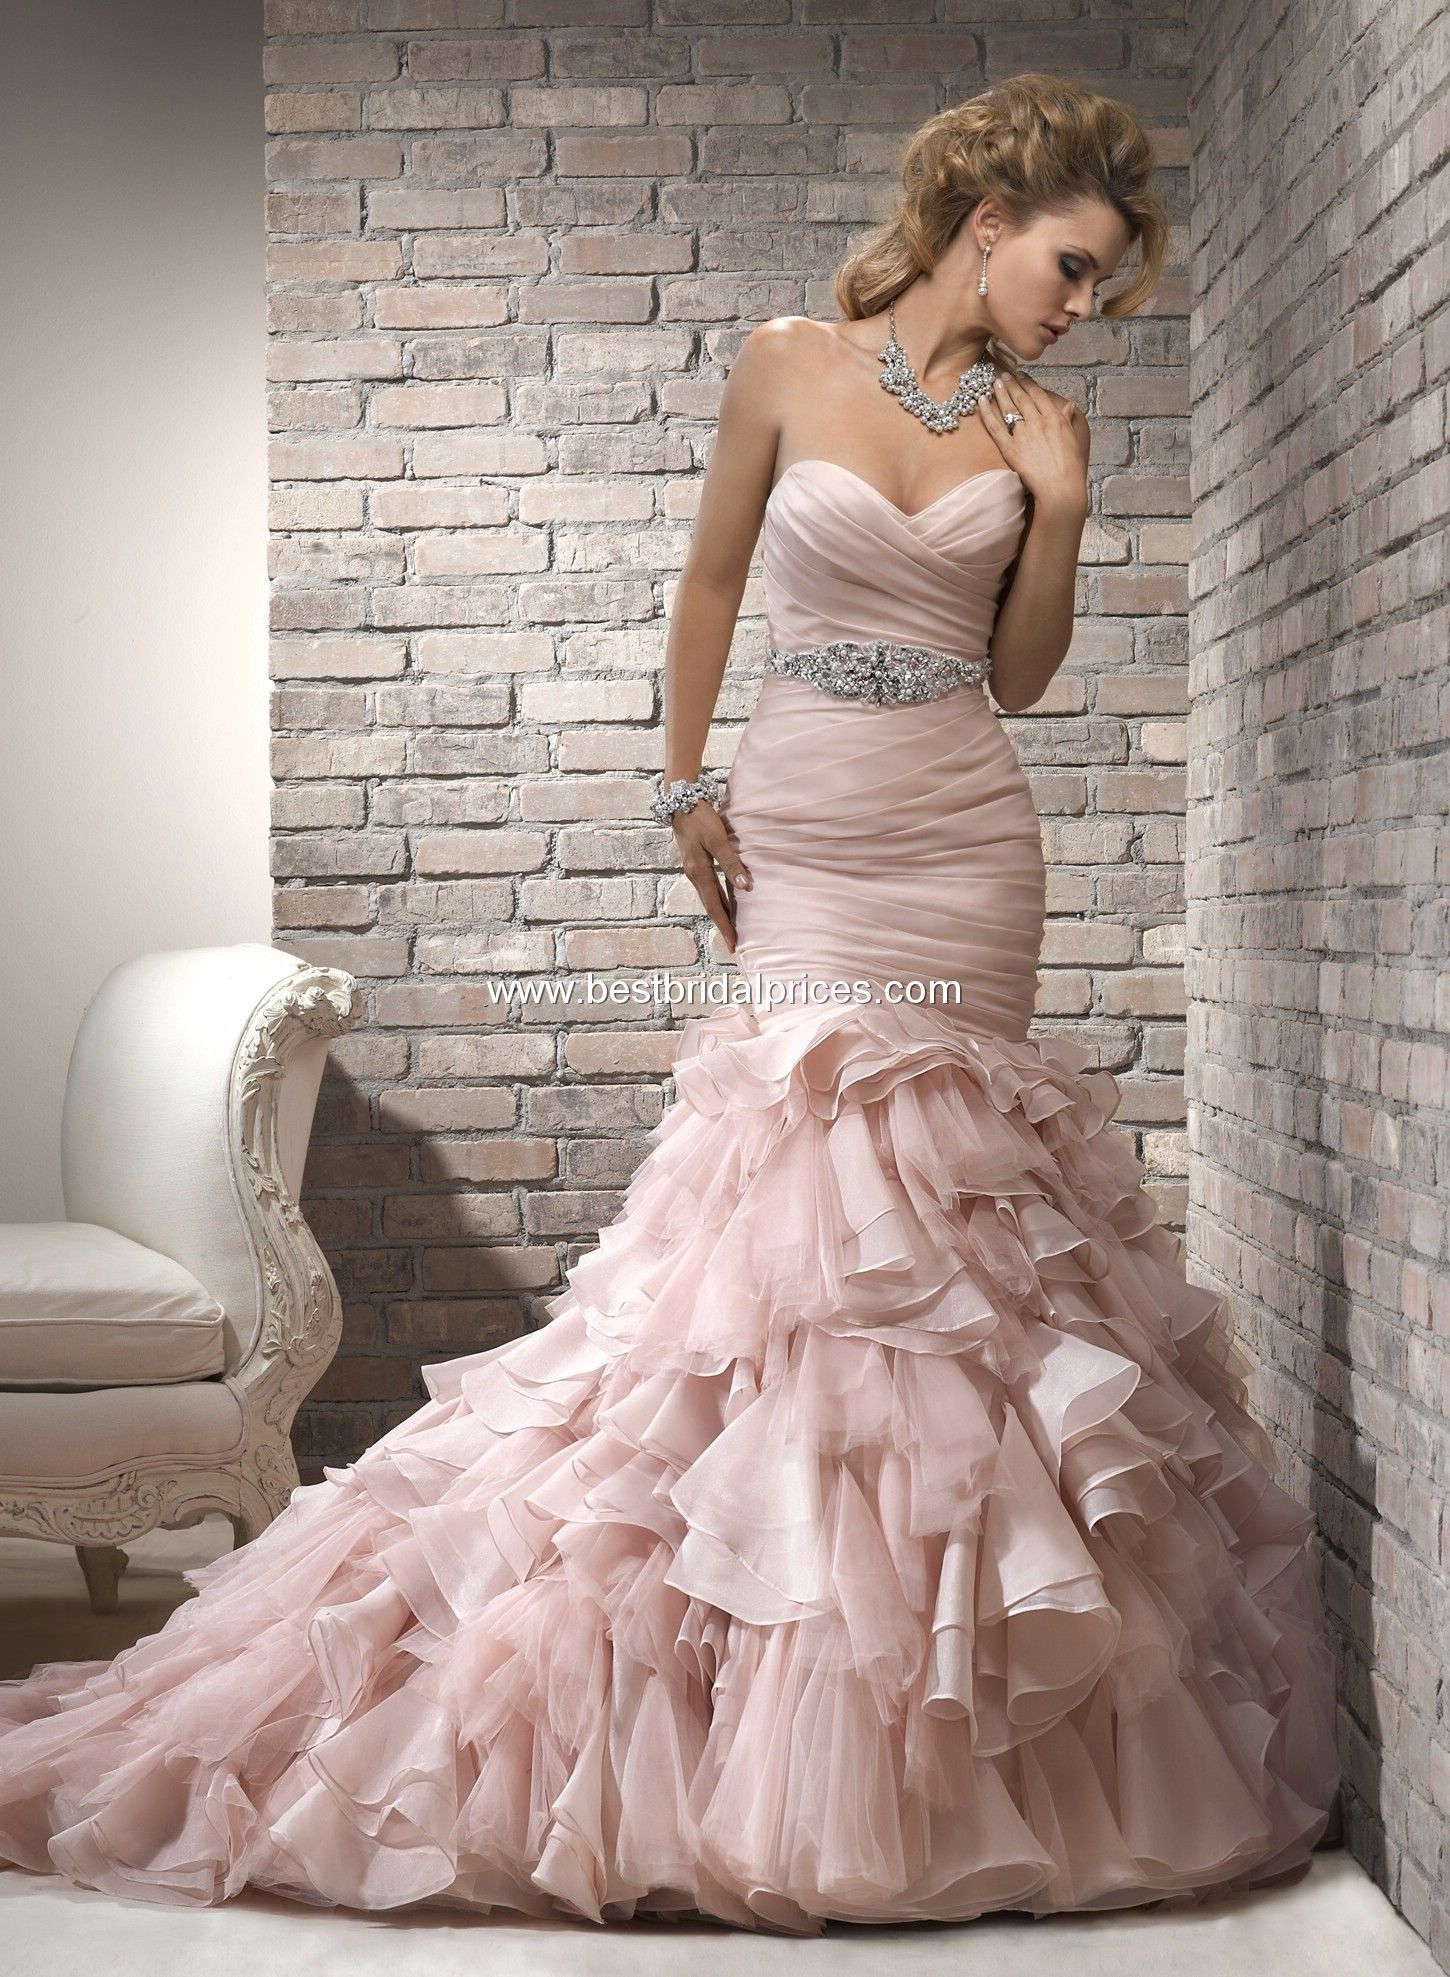 Blush Colored See Through Wedding Dress Maggie Sottero Wedding Dresses Style Divina V7153bb With Images Pink Wedding Dresses Blush Pink Wedding Dress Wedding Dresses